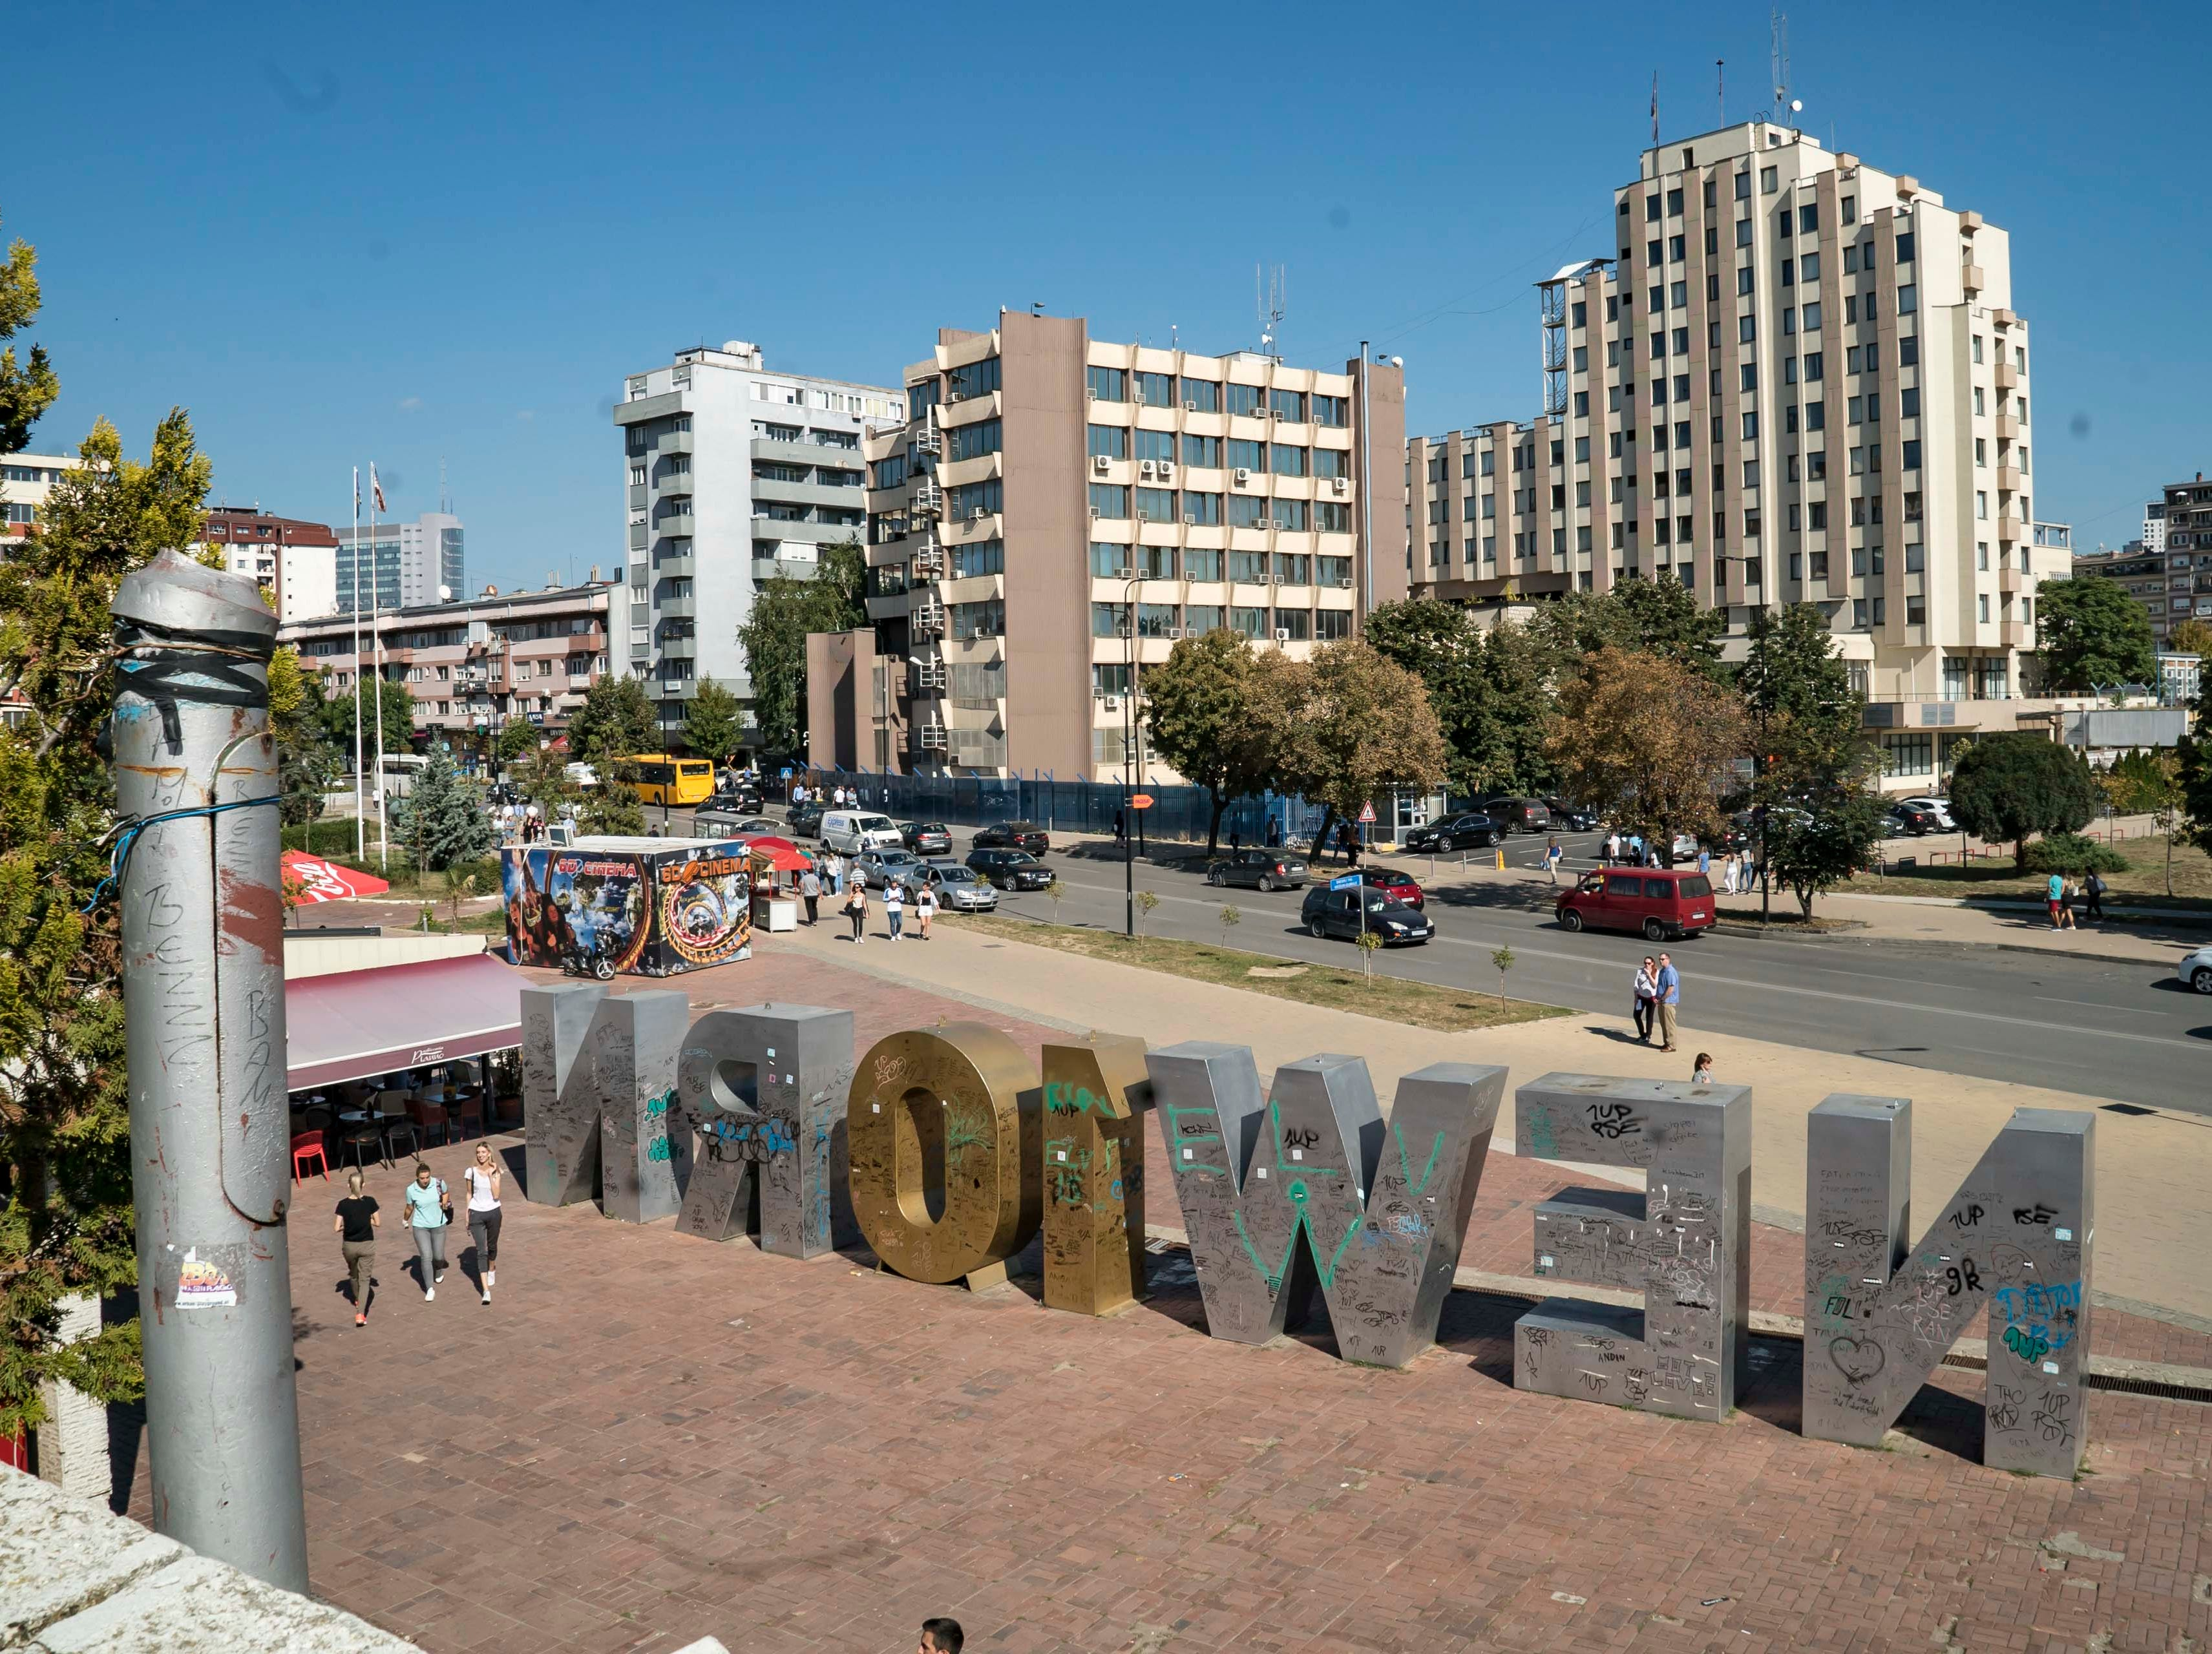 Newborn sculpture in Pristina, Kosovo, Monday Sept. 17, 2018. This year, the O and R have been replaced with a 1 and 0 to commemorate the 10th anniversary of Kosovo's independence.